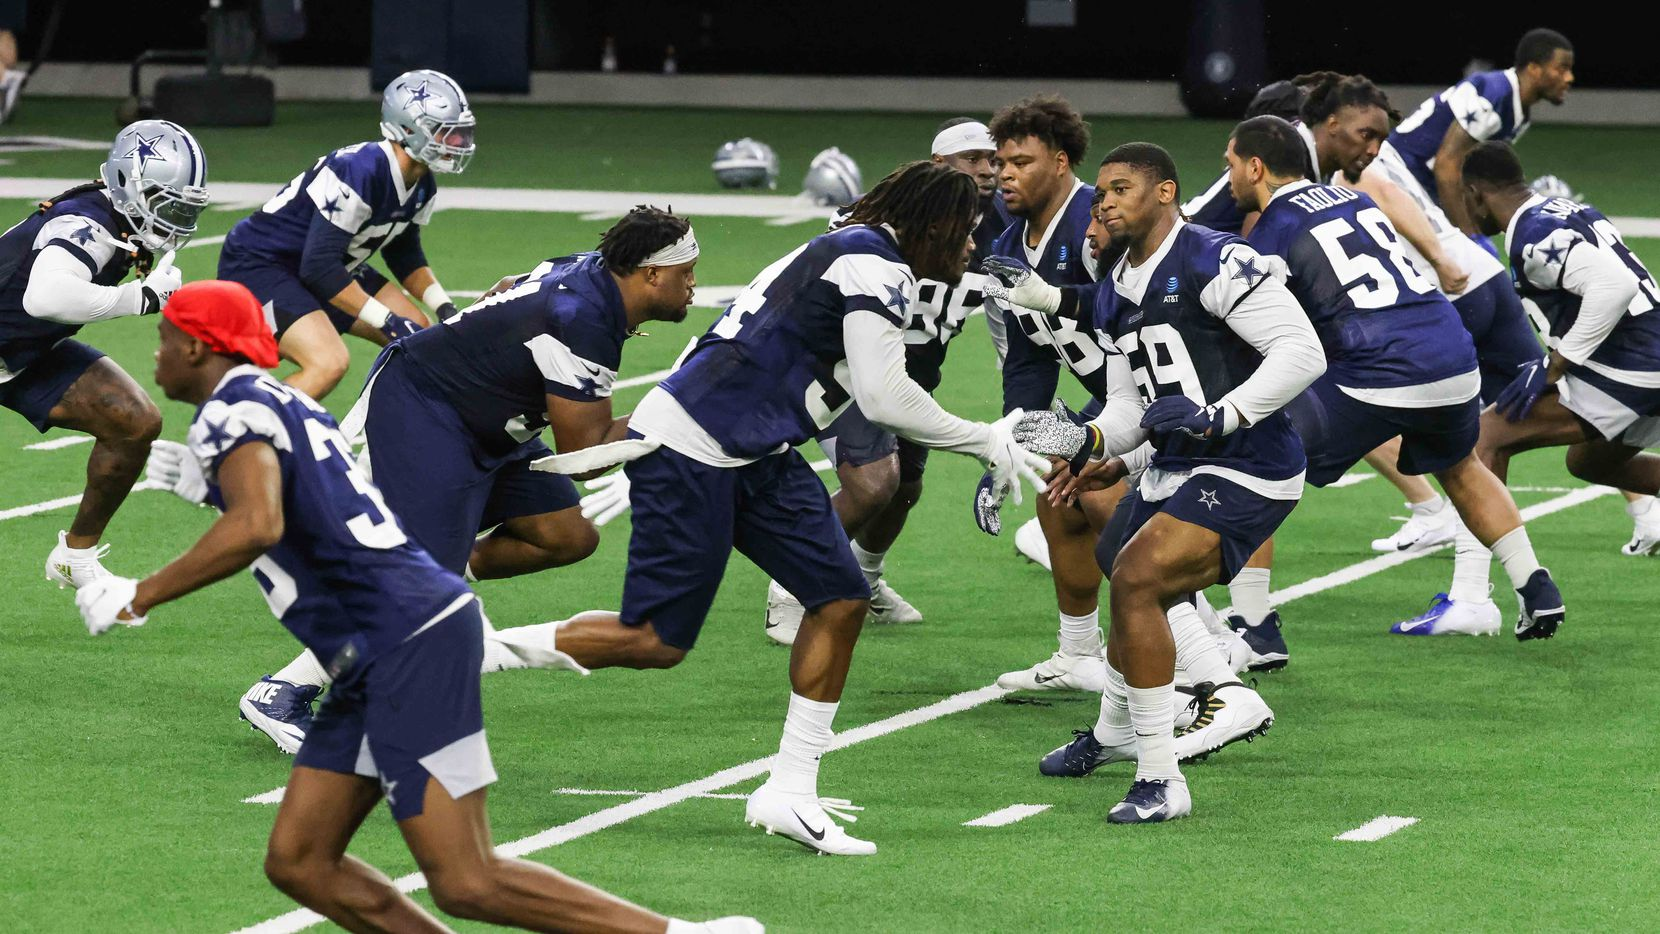 Cowboys' full-squad offseason workouts at The Star in Frisco on Tuesday, May 25, 2021.